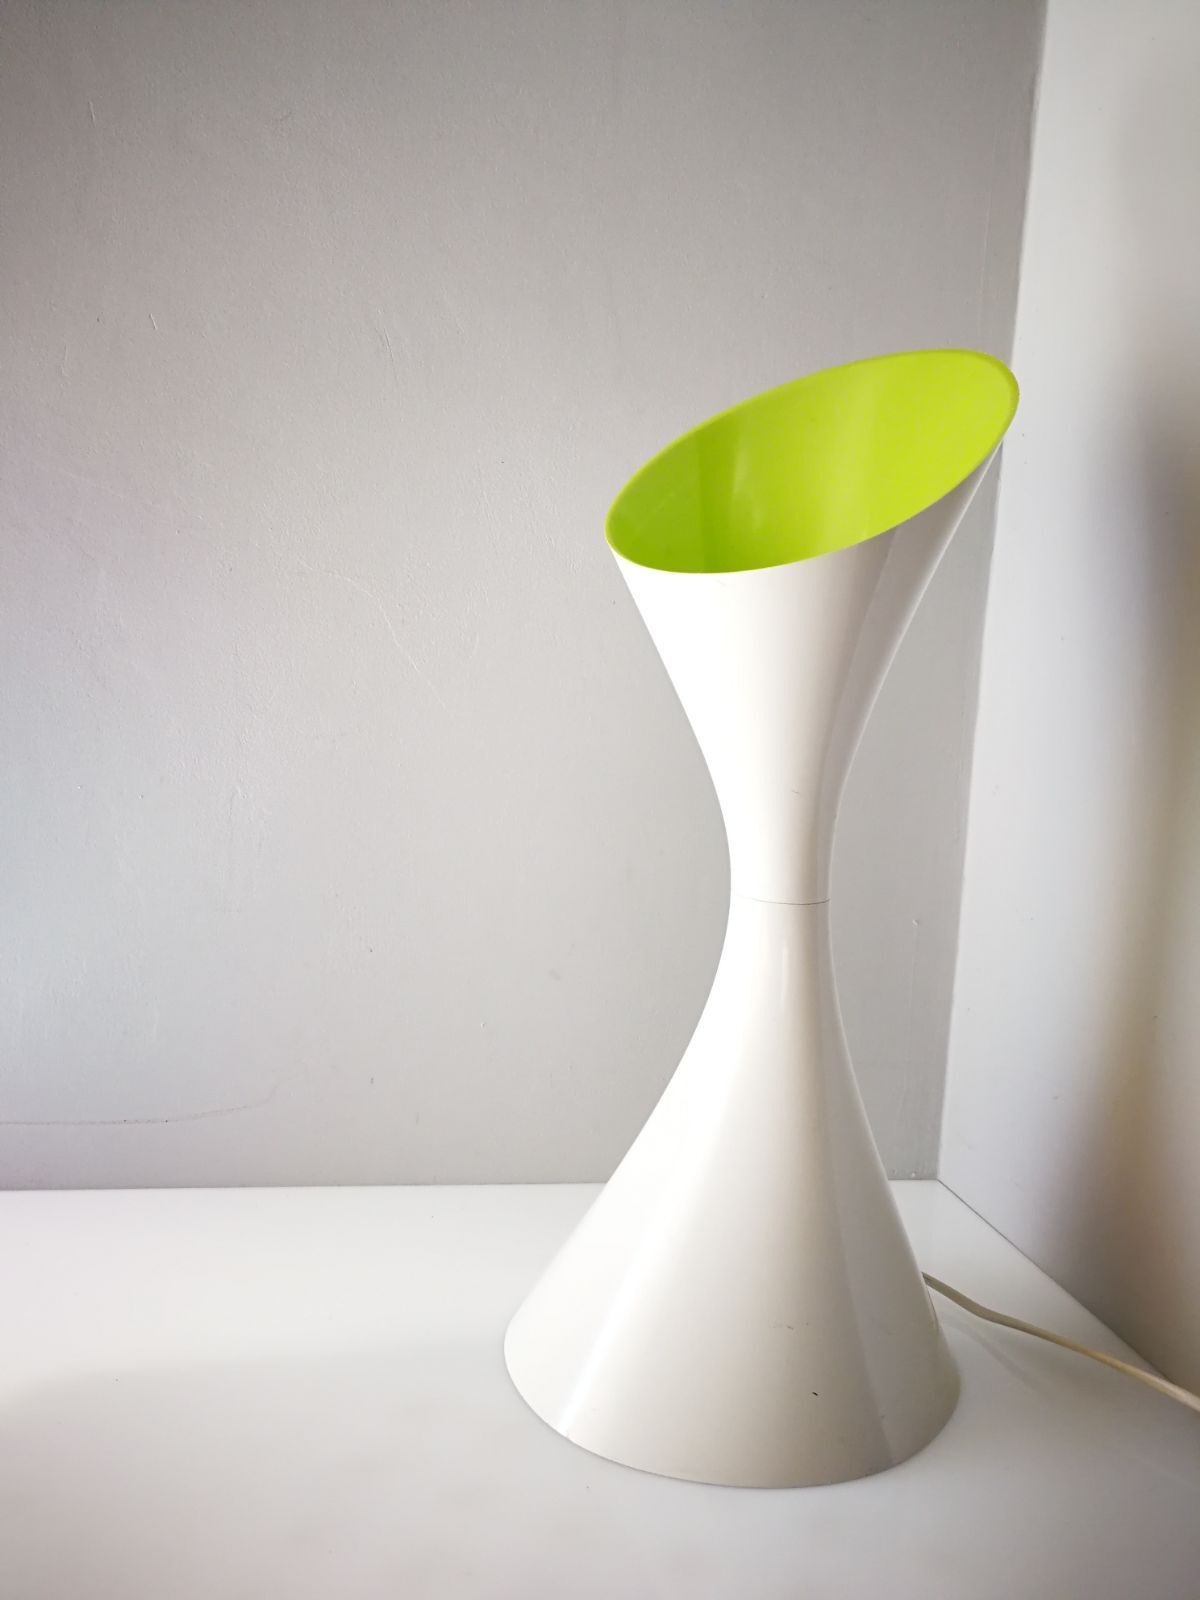 EXCLUSIVE DESIGN LAMP LILY - JENNY KEATE - 1999